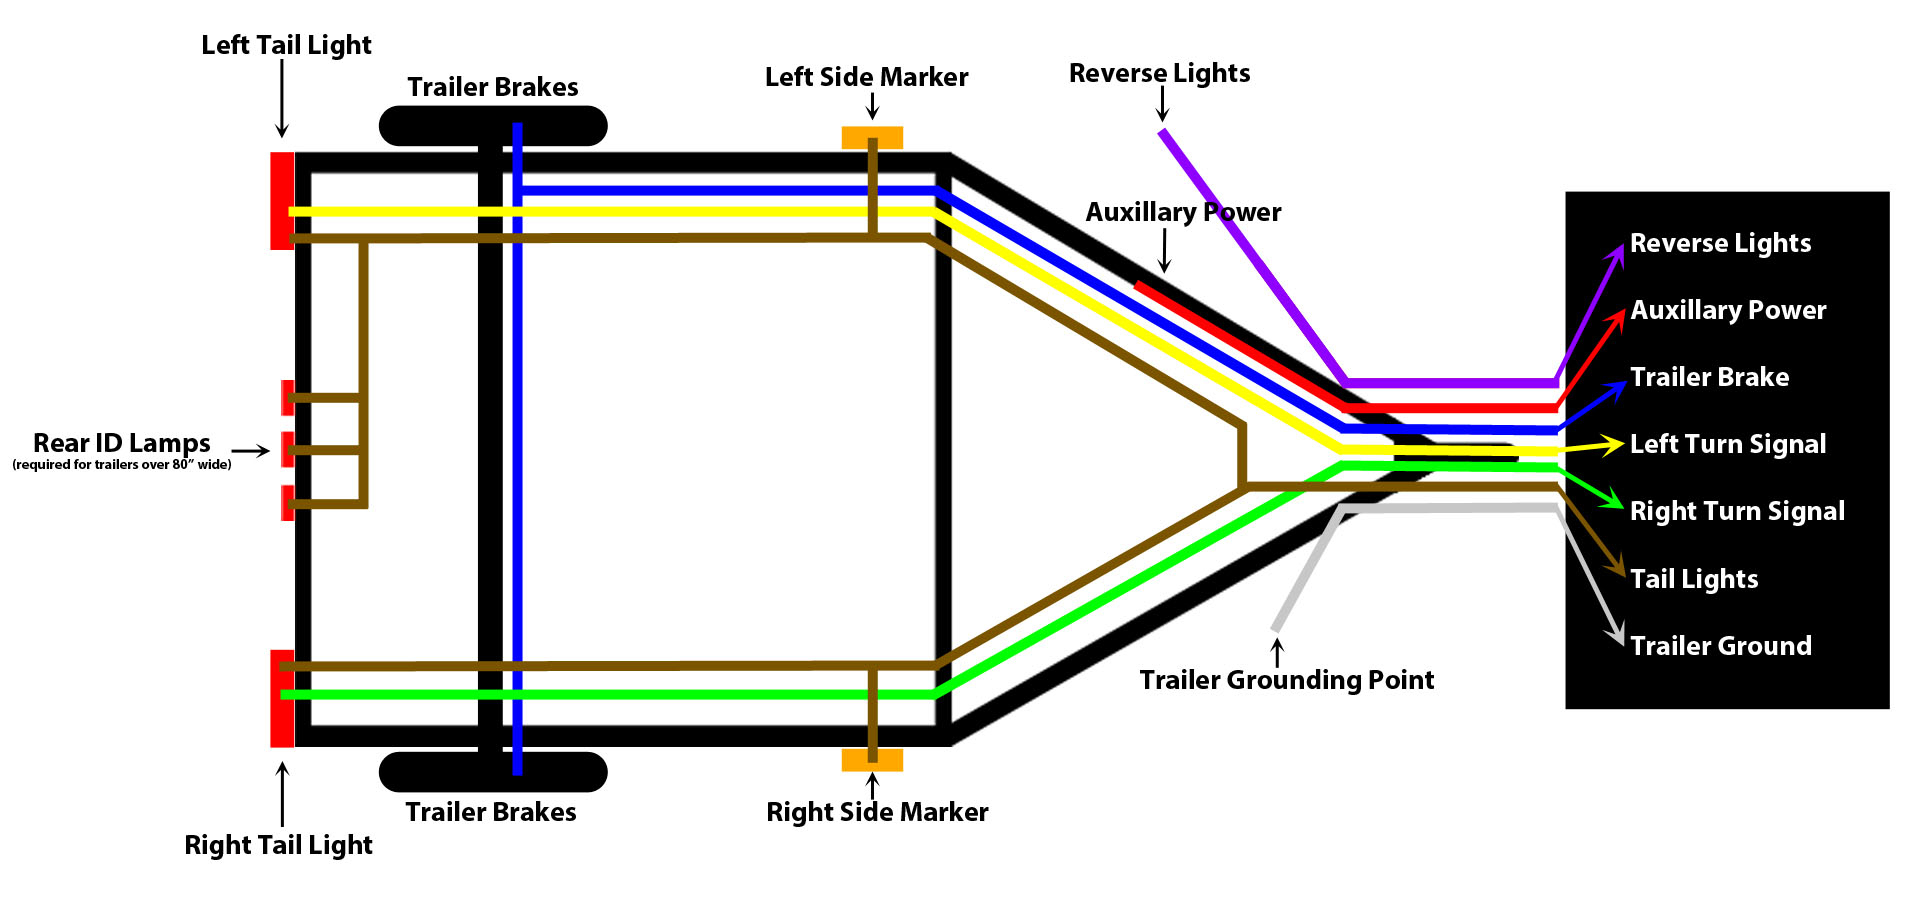 Wiring Harness For Utility Trailers - Wiring Diagram Data - Boat Trailer Wiring Harness Diagram